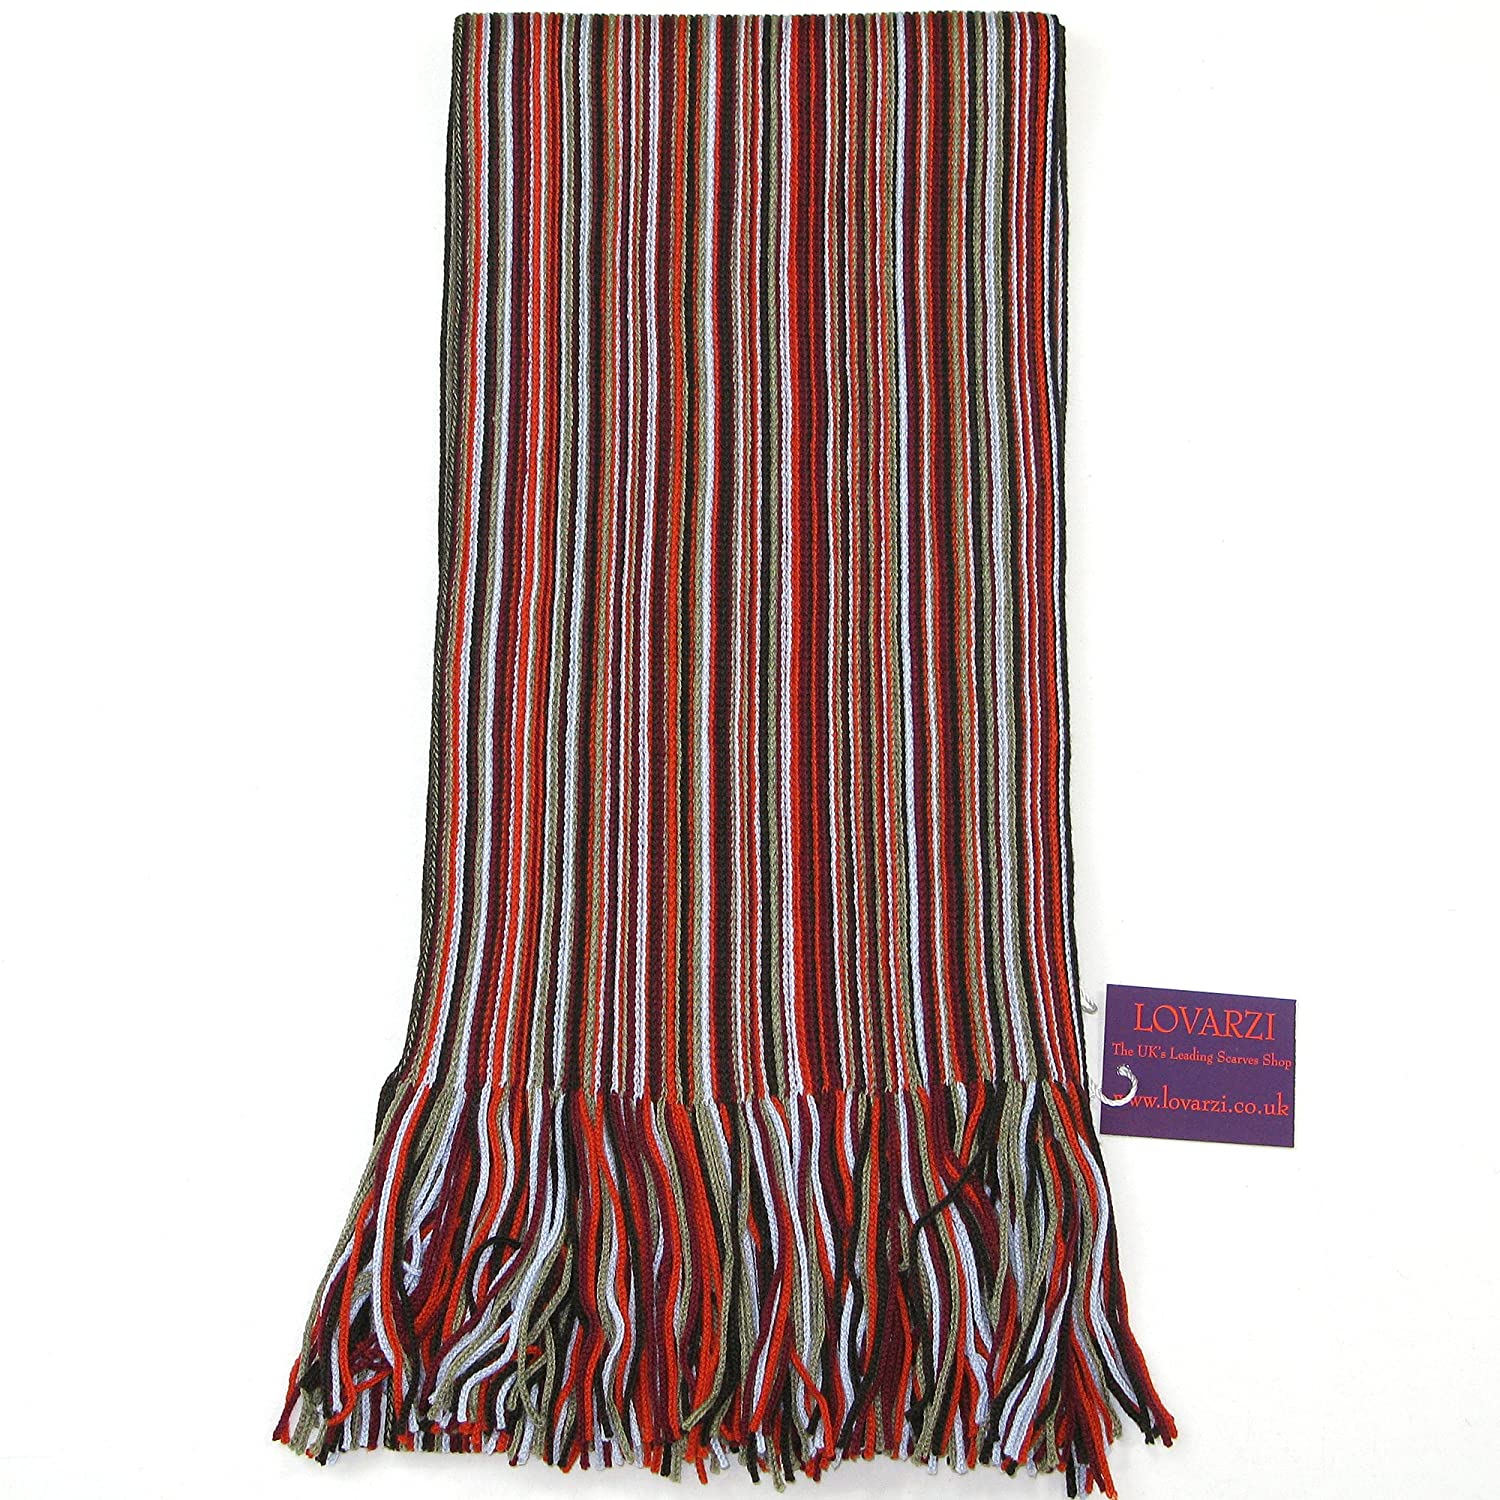 Lovarzi Men's Scarf - Beautiful Fine Merino Wool Winter Striped Scarf for Men Orange